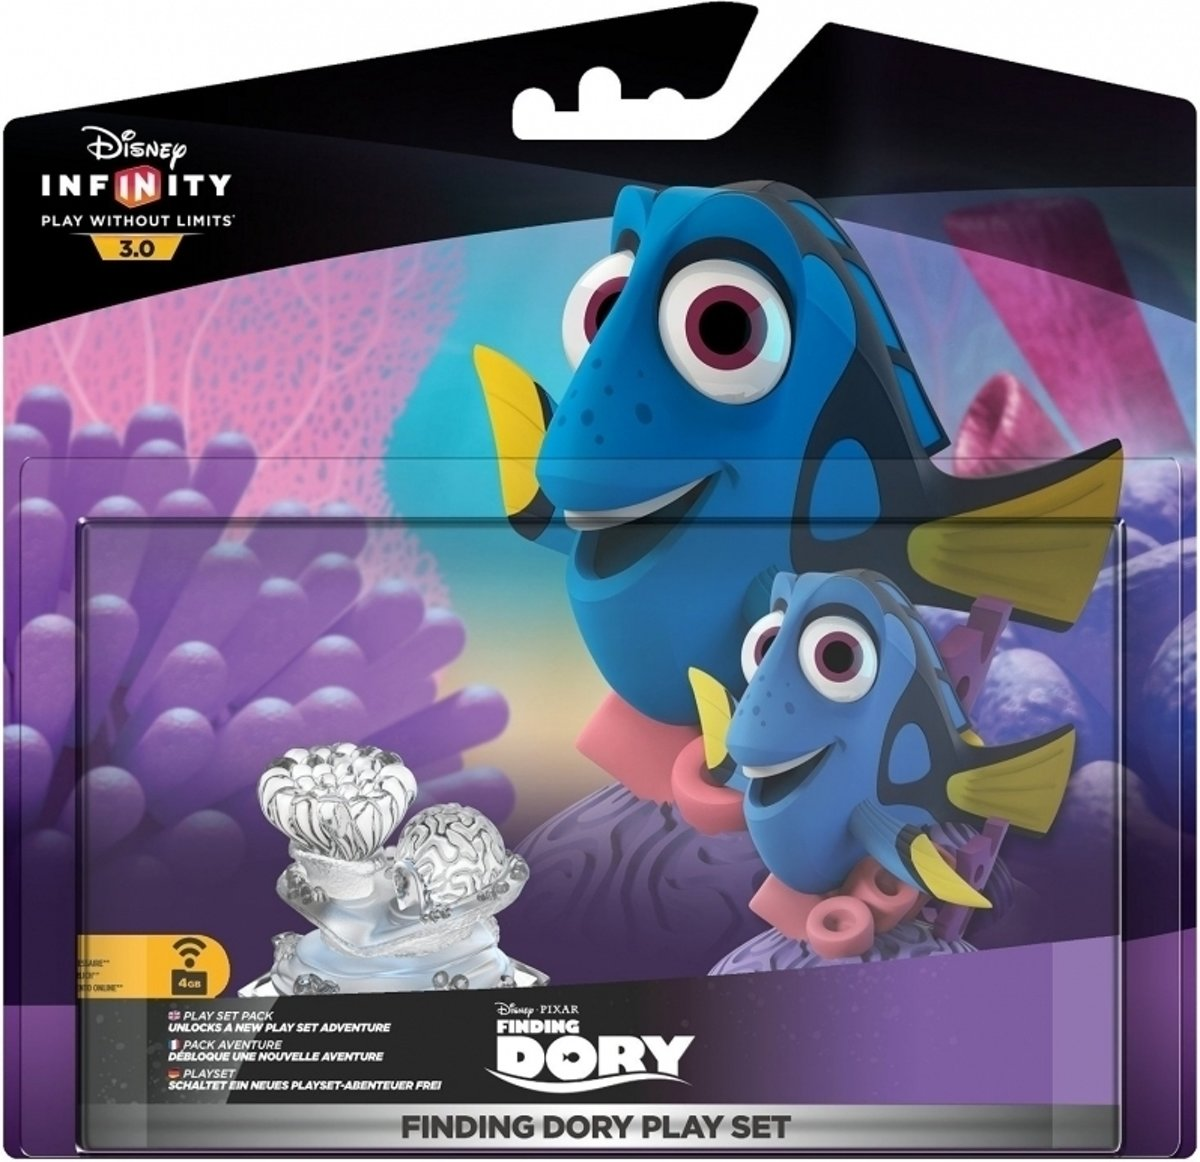 Disney Infinity 3.0 Finding Dory Play Set Pack